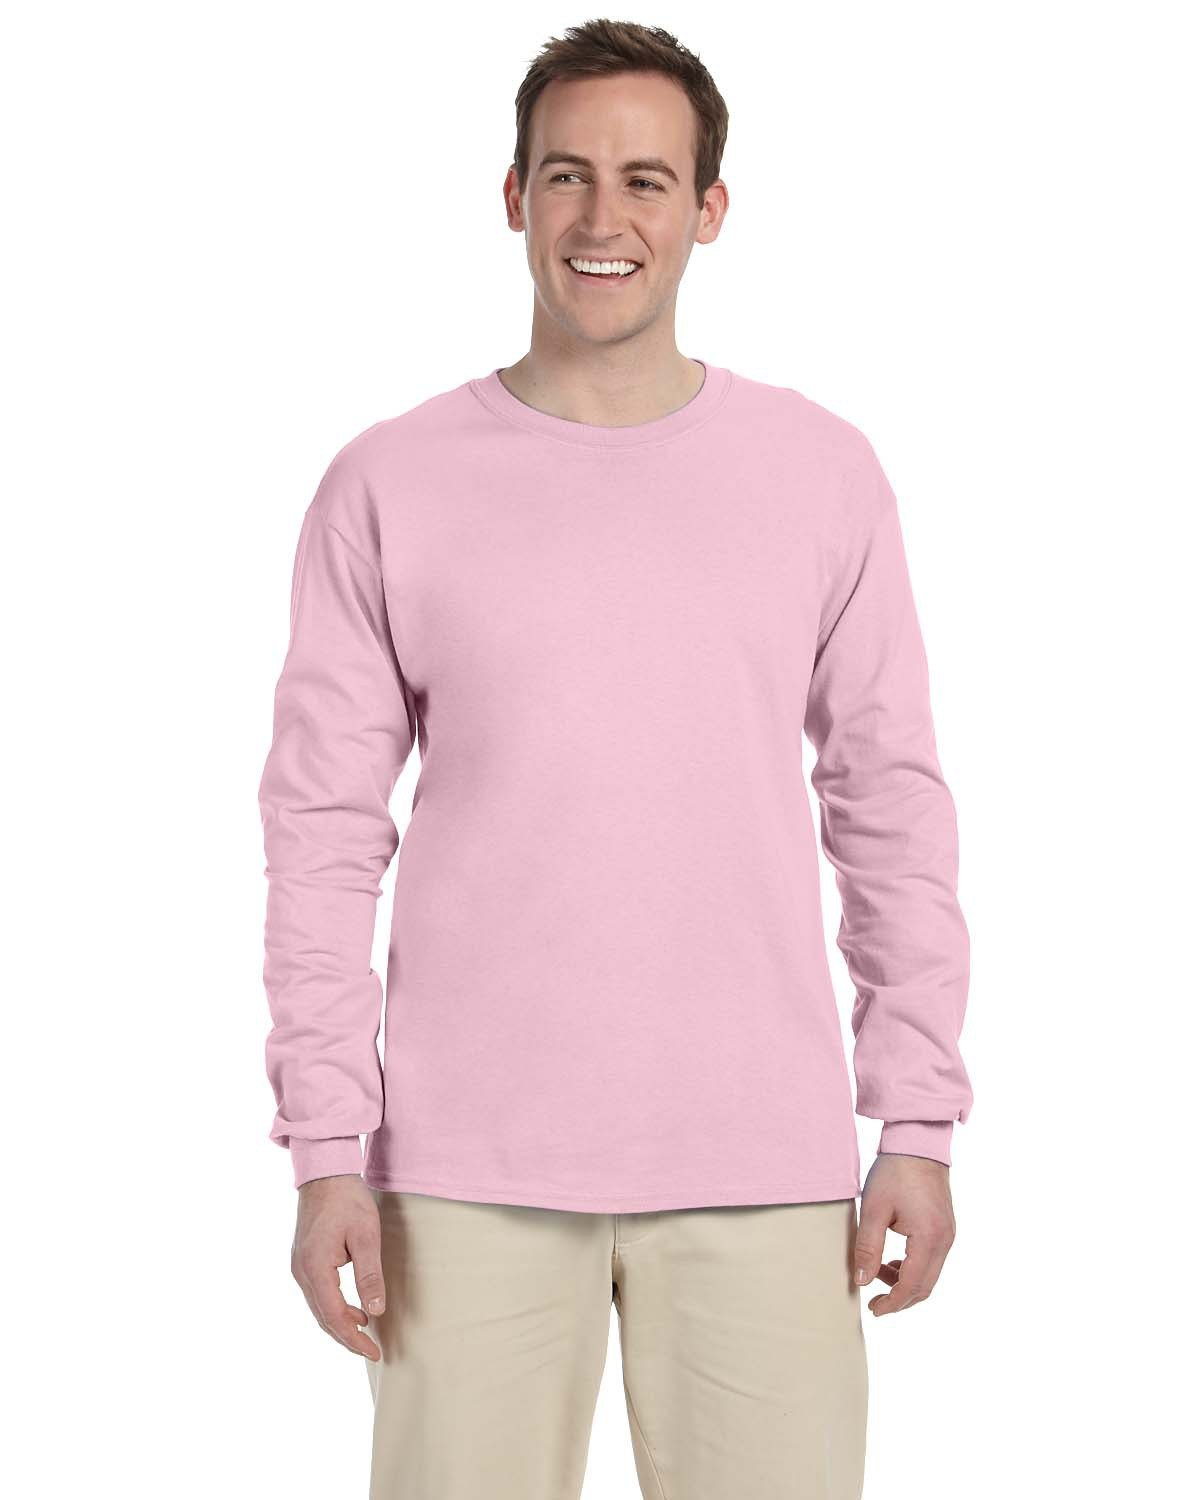 Fruit of the Loom Adult HD Cotton™ Long-Sleeve T-Shirt CLASSIC PINK